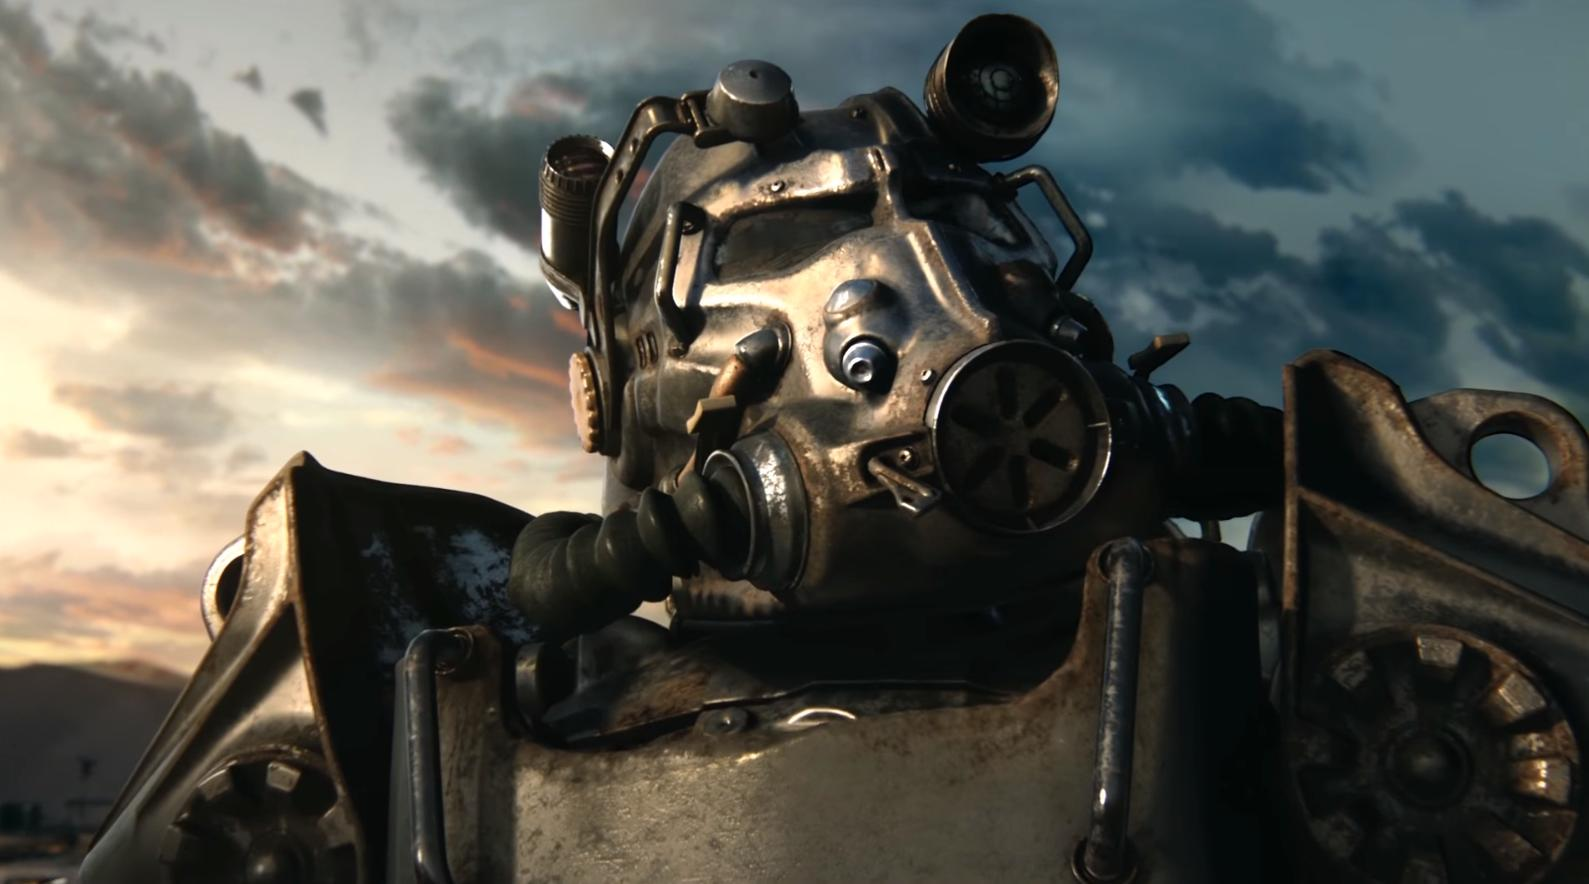 Fallout 3 porn machinima nackt images